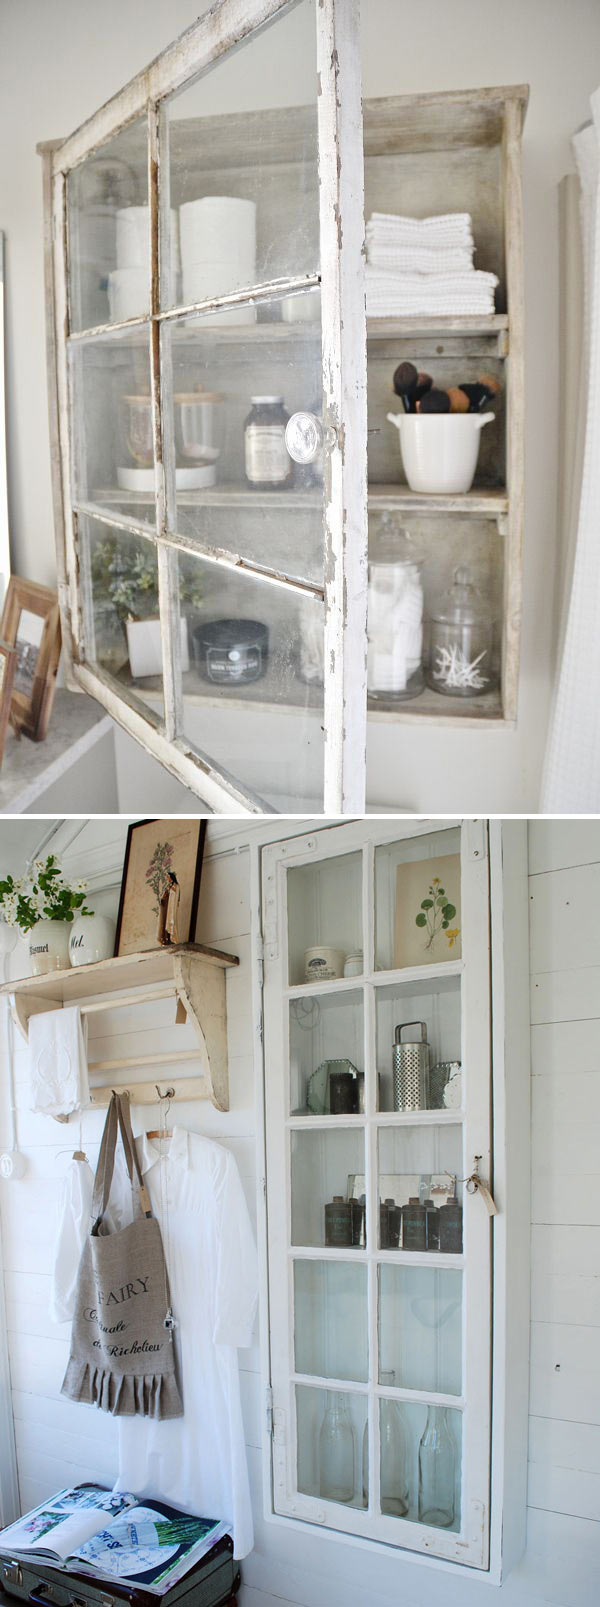 Re-purpose an old window and some boards to build a DIY bathroom cabinet